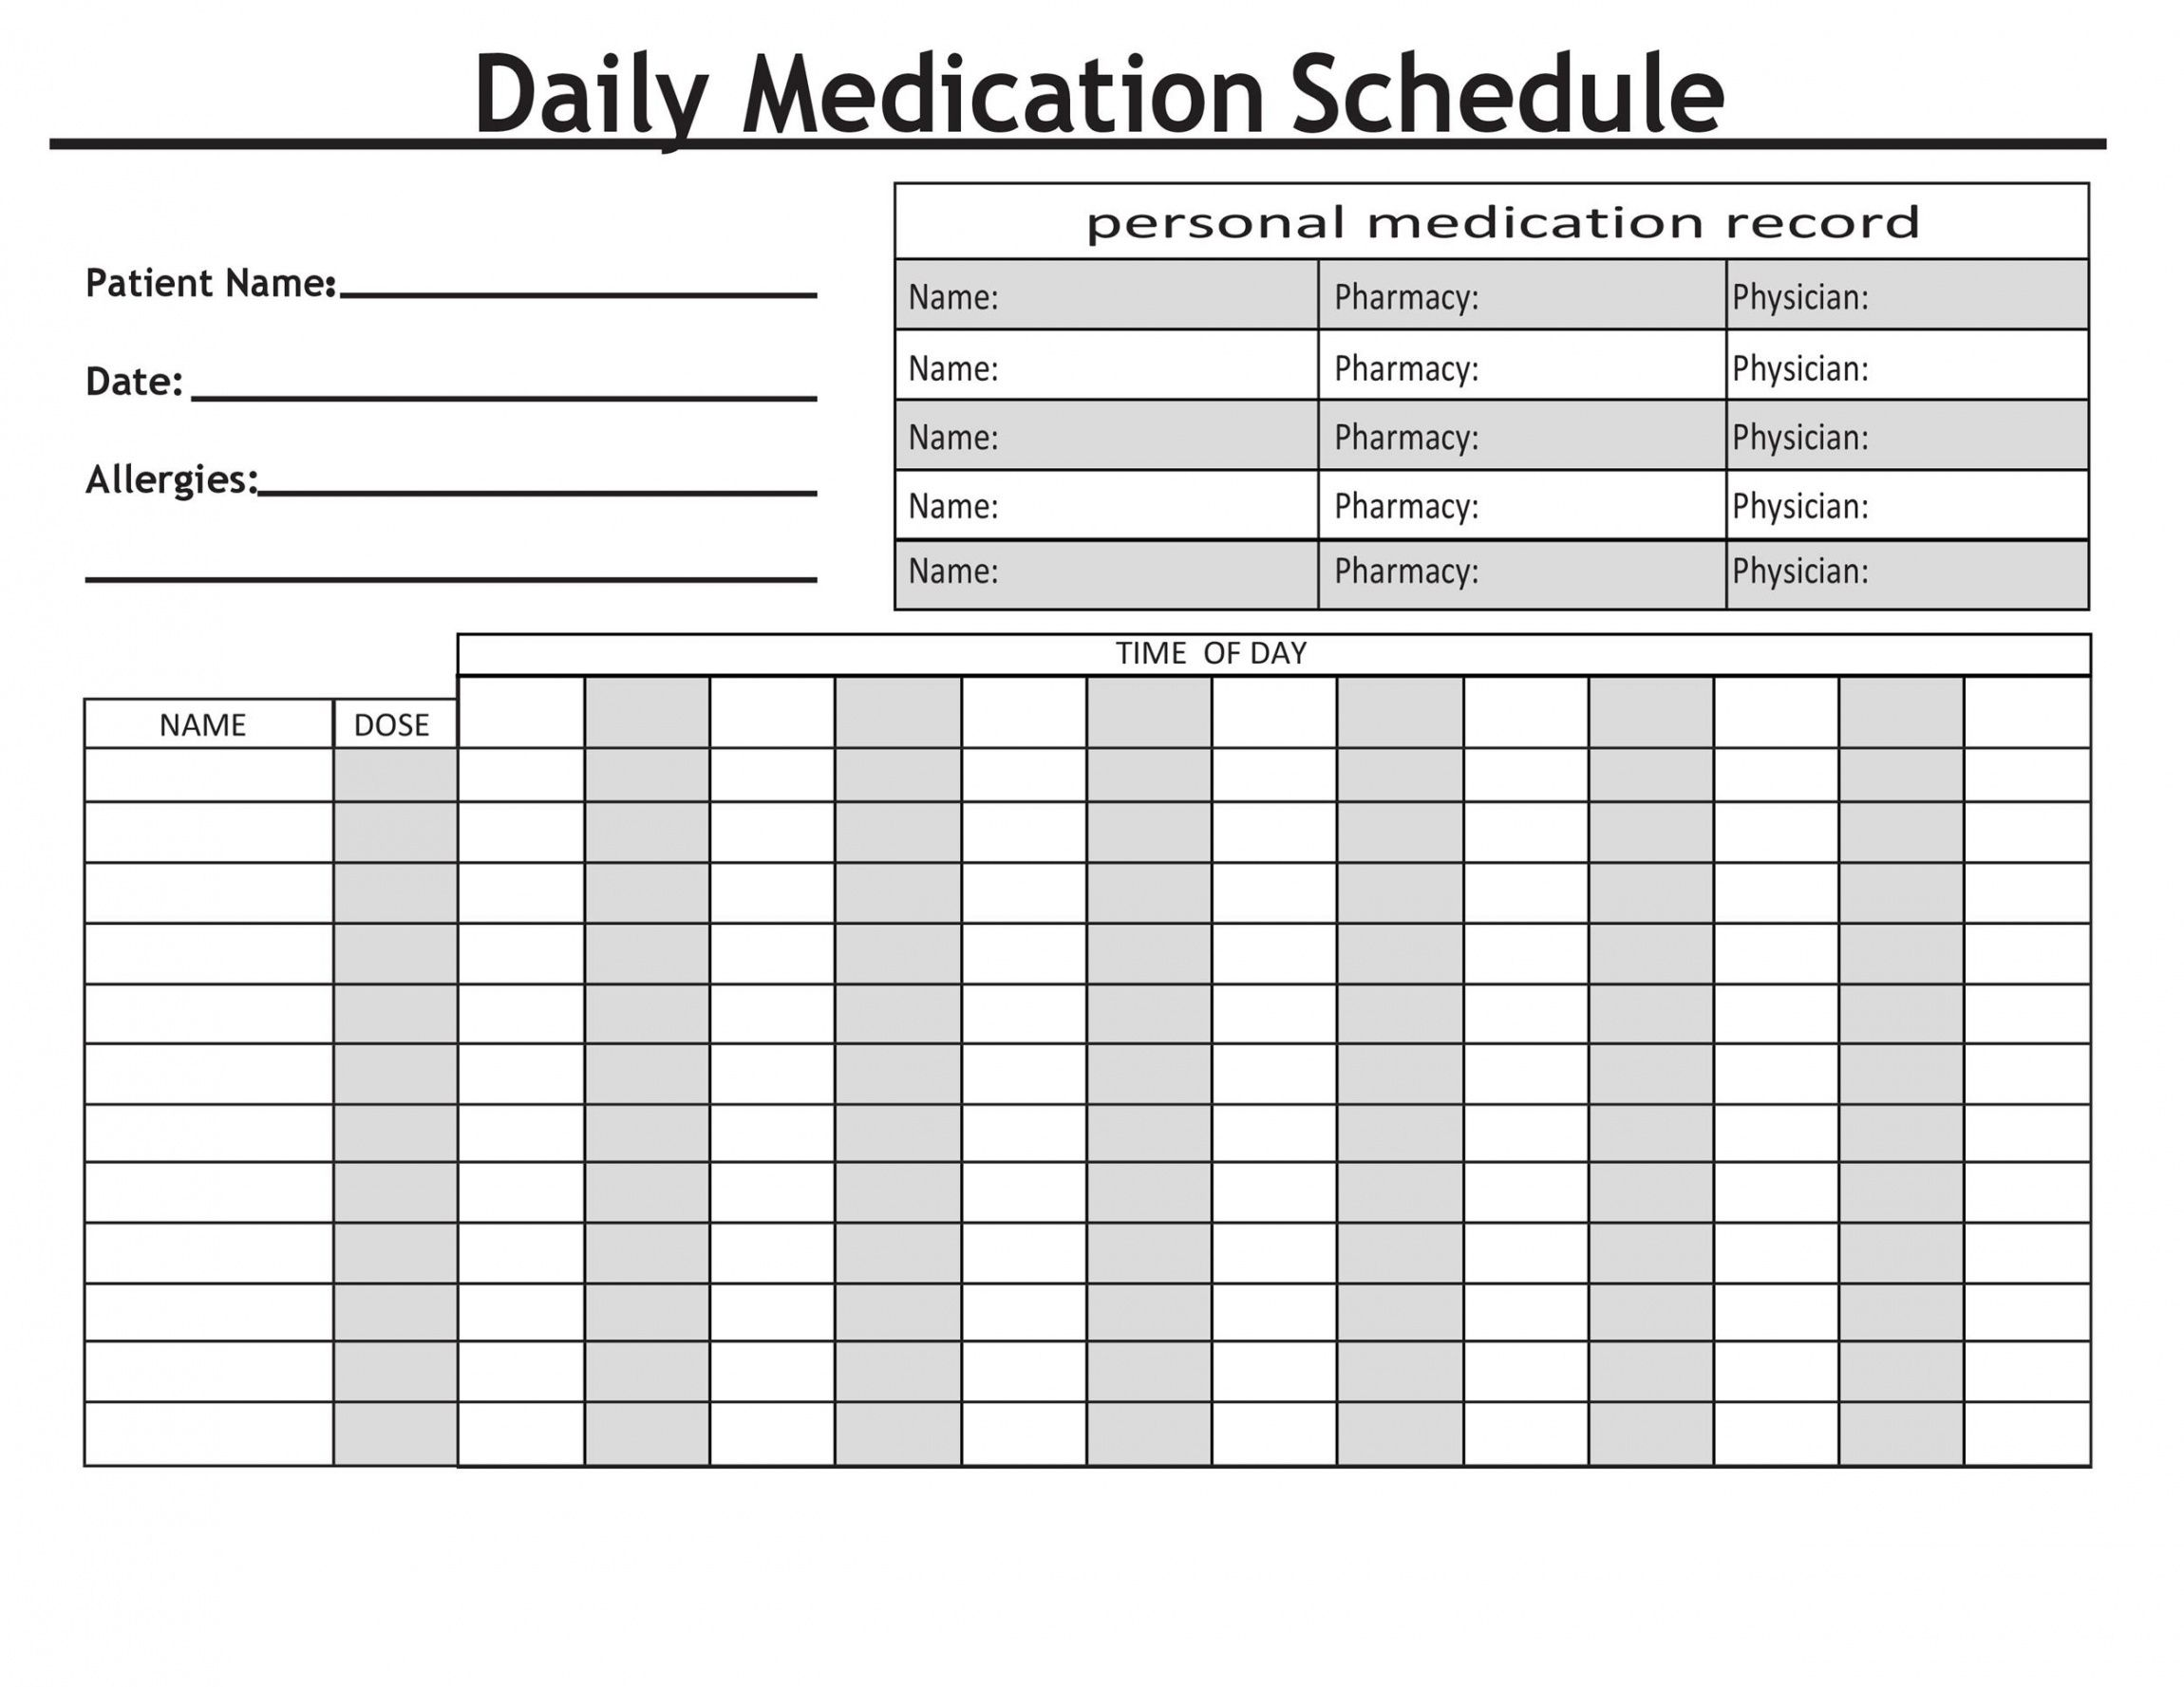 40 great medication schedule templates medication calendars daily medicine schedule template